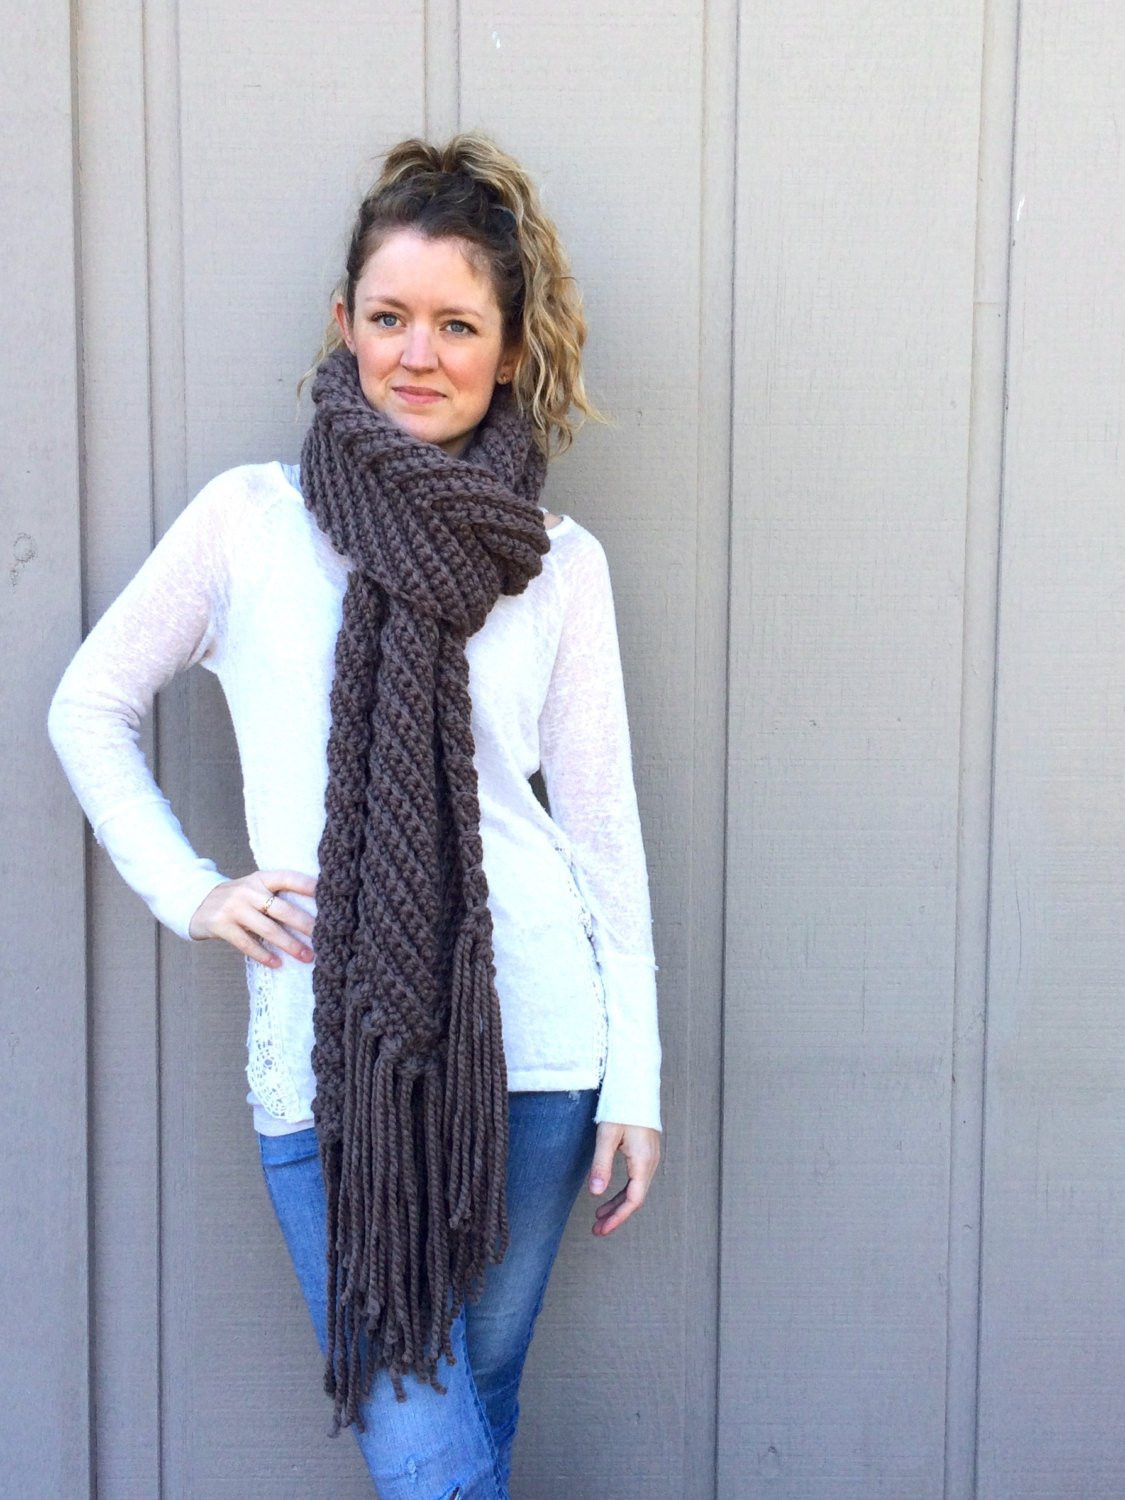 New 2 Crochet Patterns Infinity Scarf Cowl Super Bulky Super Chunky Yarn Patterns Of Delightful 42 Ideas Super Chunky Yarn Patterns